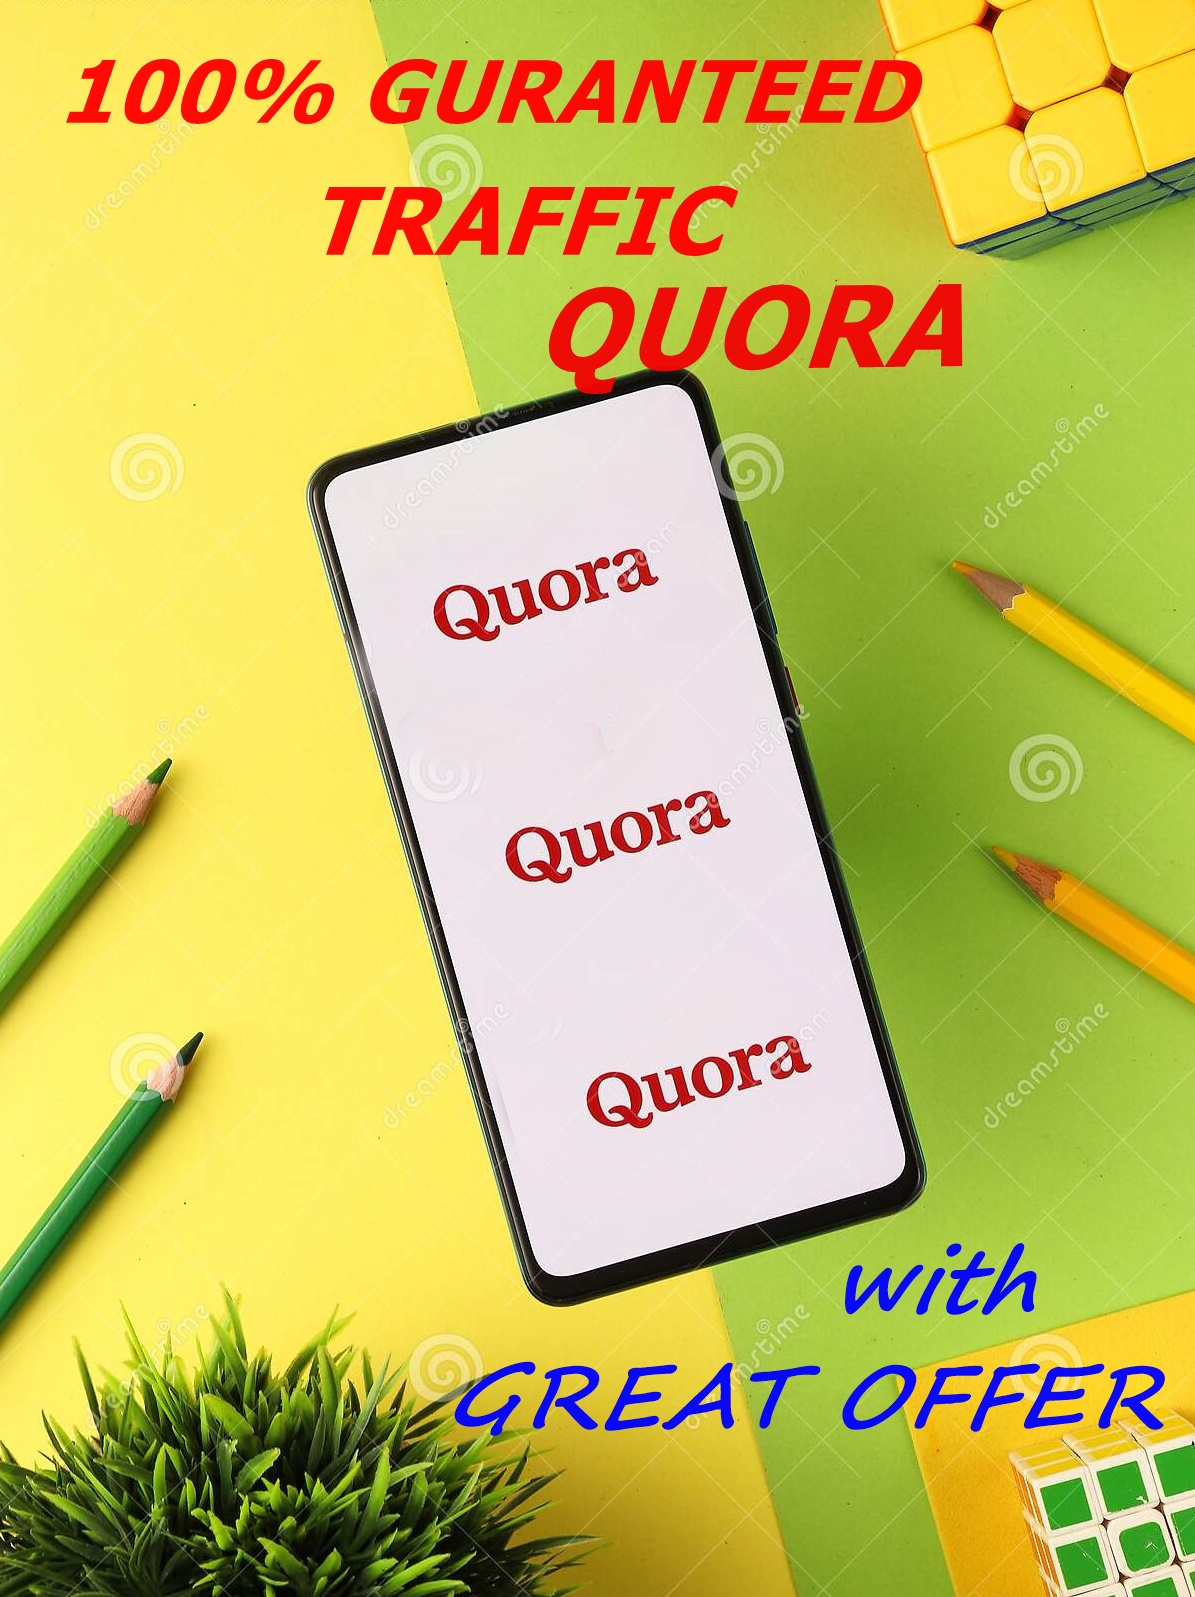 Great Offer Get 30 Answers.100 Guaranteed Traffic on QUORA.